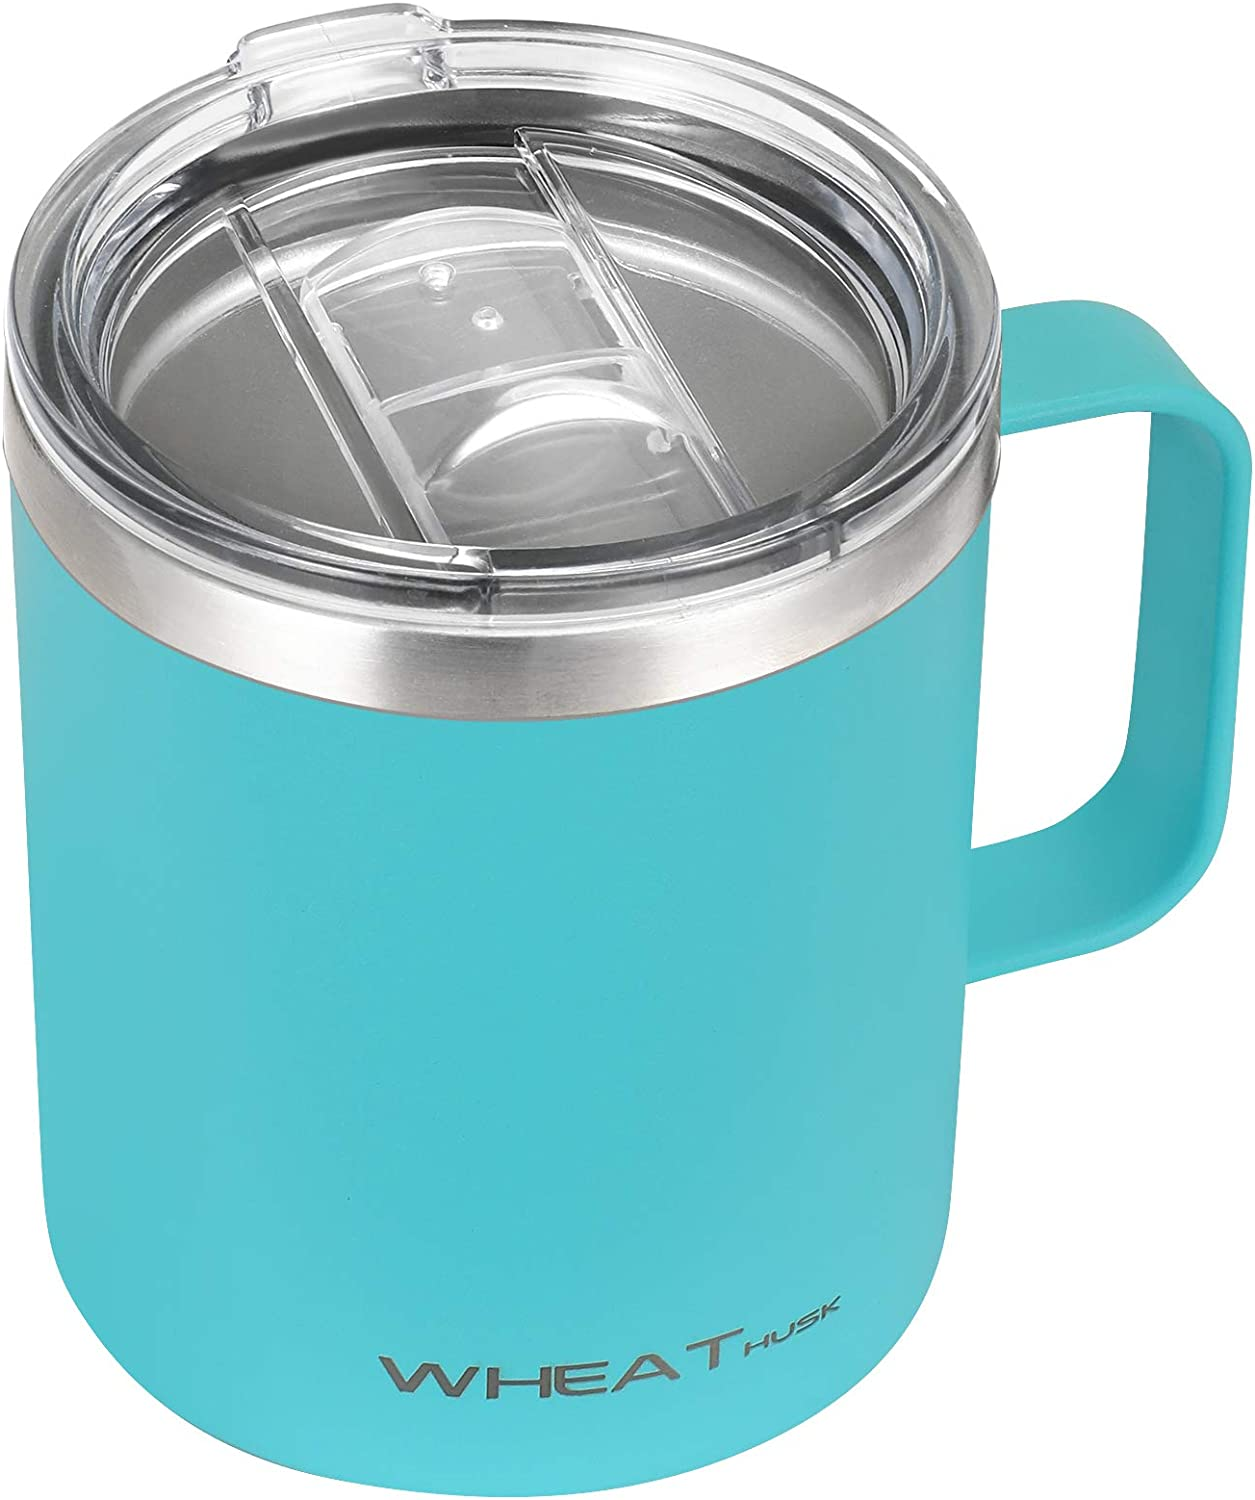 Stainless Steel Coffee Mug 12 oz, Vacuum Insulated Tumbler with Handle, Double Wall Tumbler Cup with Sliding Lid Camping Tea Flask for Hot & Cold Drinks (Teal, 12oz-1 Pack)